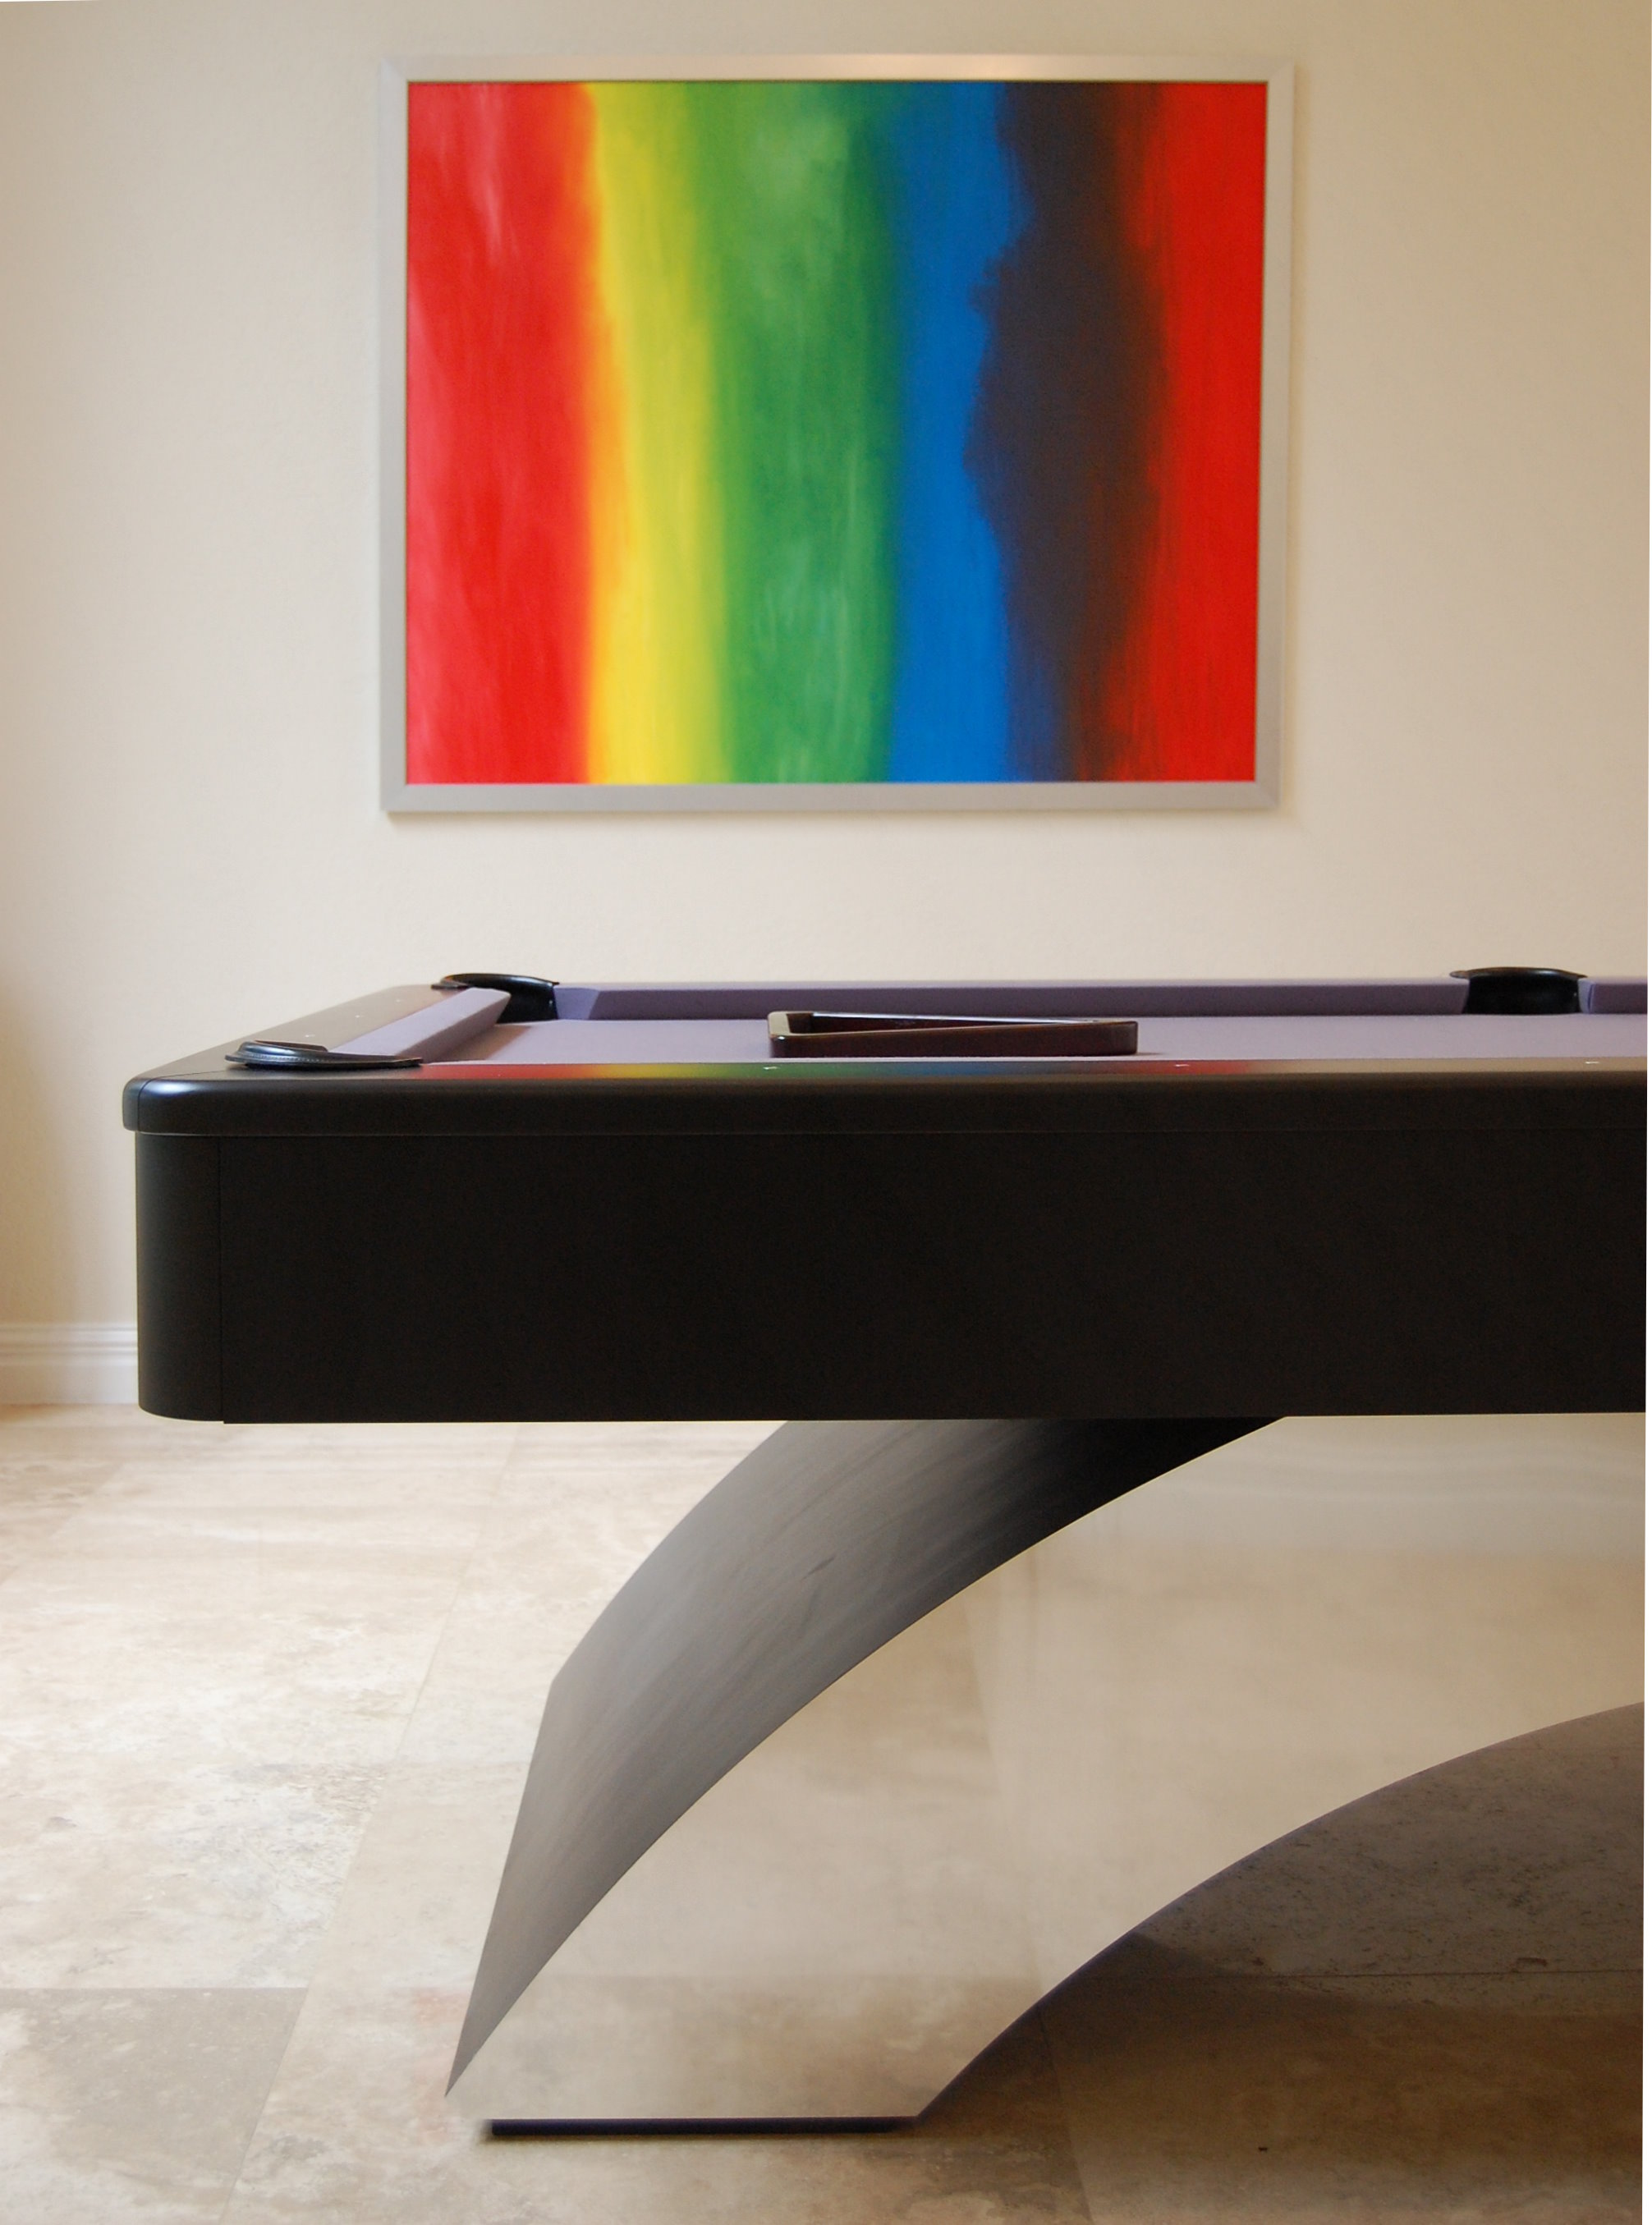 pool-table-and-Chromatic.jpg